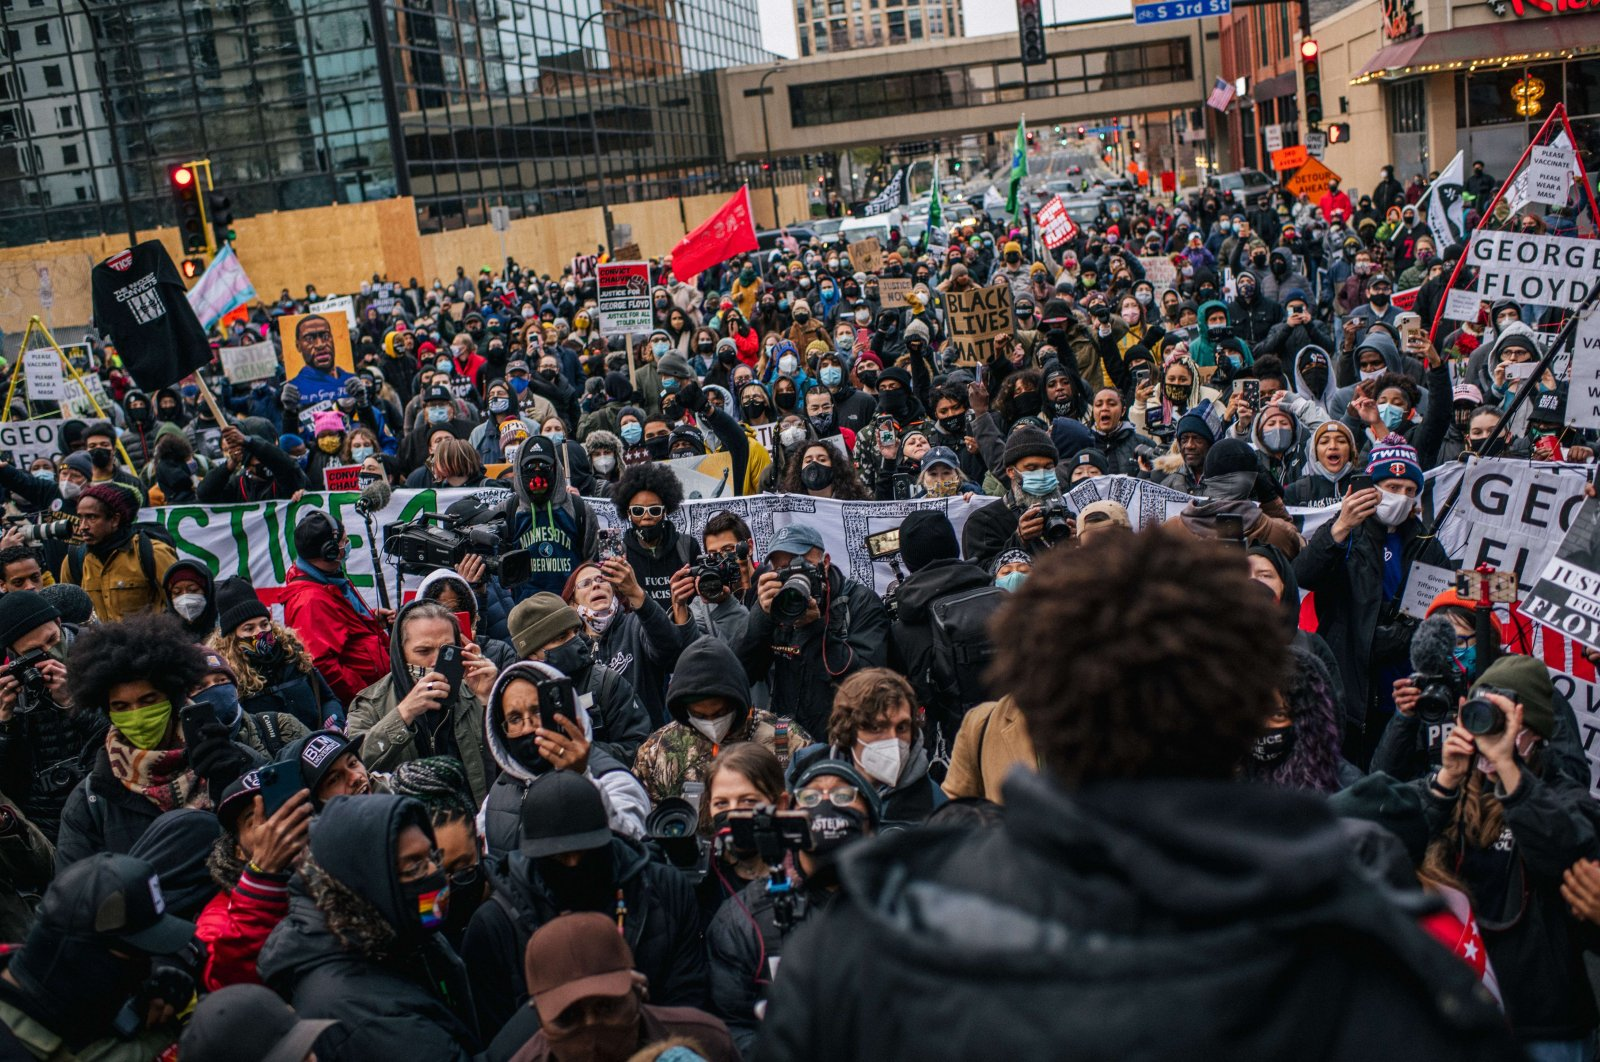 Local organizer Brandyn Tulloch speaks to the crowd during a demonstration in Minneapolis, Minnesota, U.S., April 19, 2021  (Brandon Bell/Getty Images/AFP)